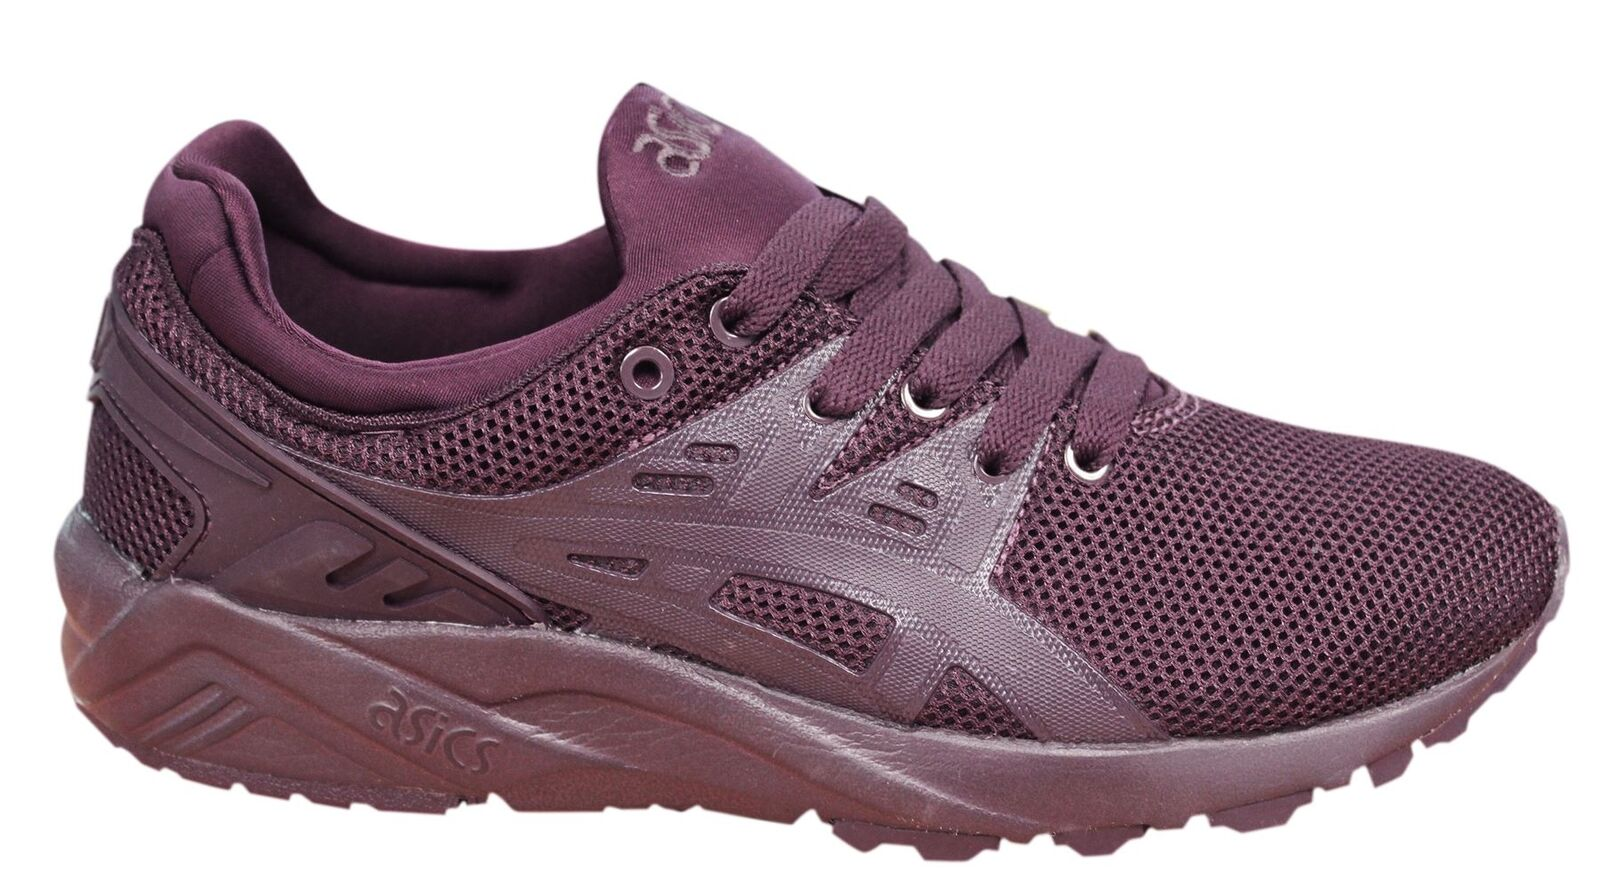 Asics Gel-Kayano Evo Lace Up Rioja rot Synthetic Mens Trainers HN6A0 5252 U112